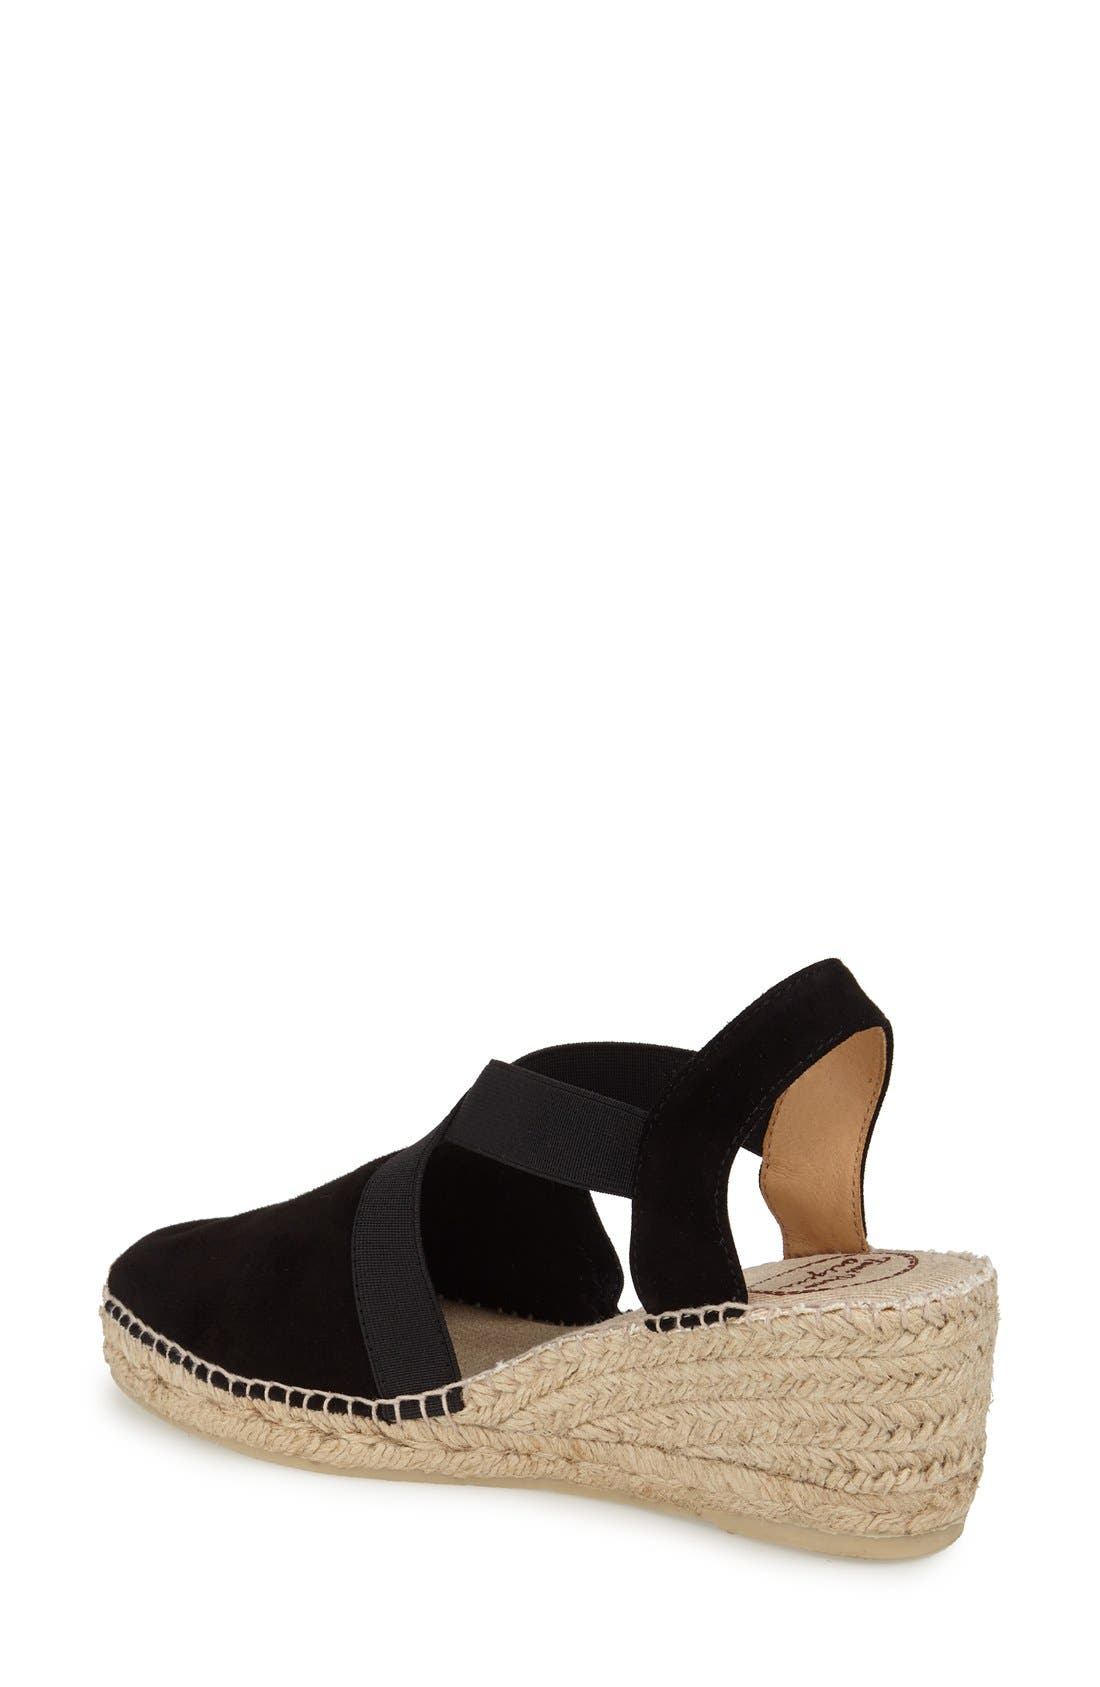 Alternate Image 2  - Toni Pons 'Tona' Espadrille Wedge (Women)